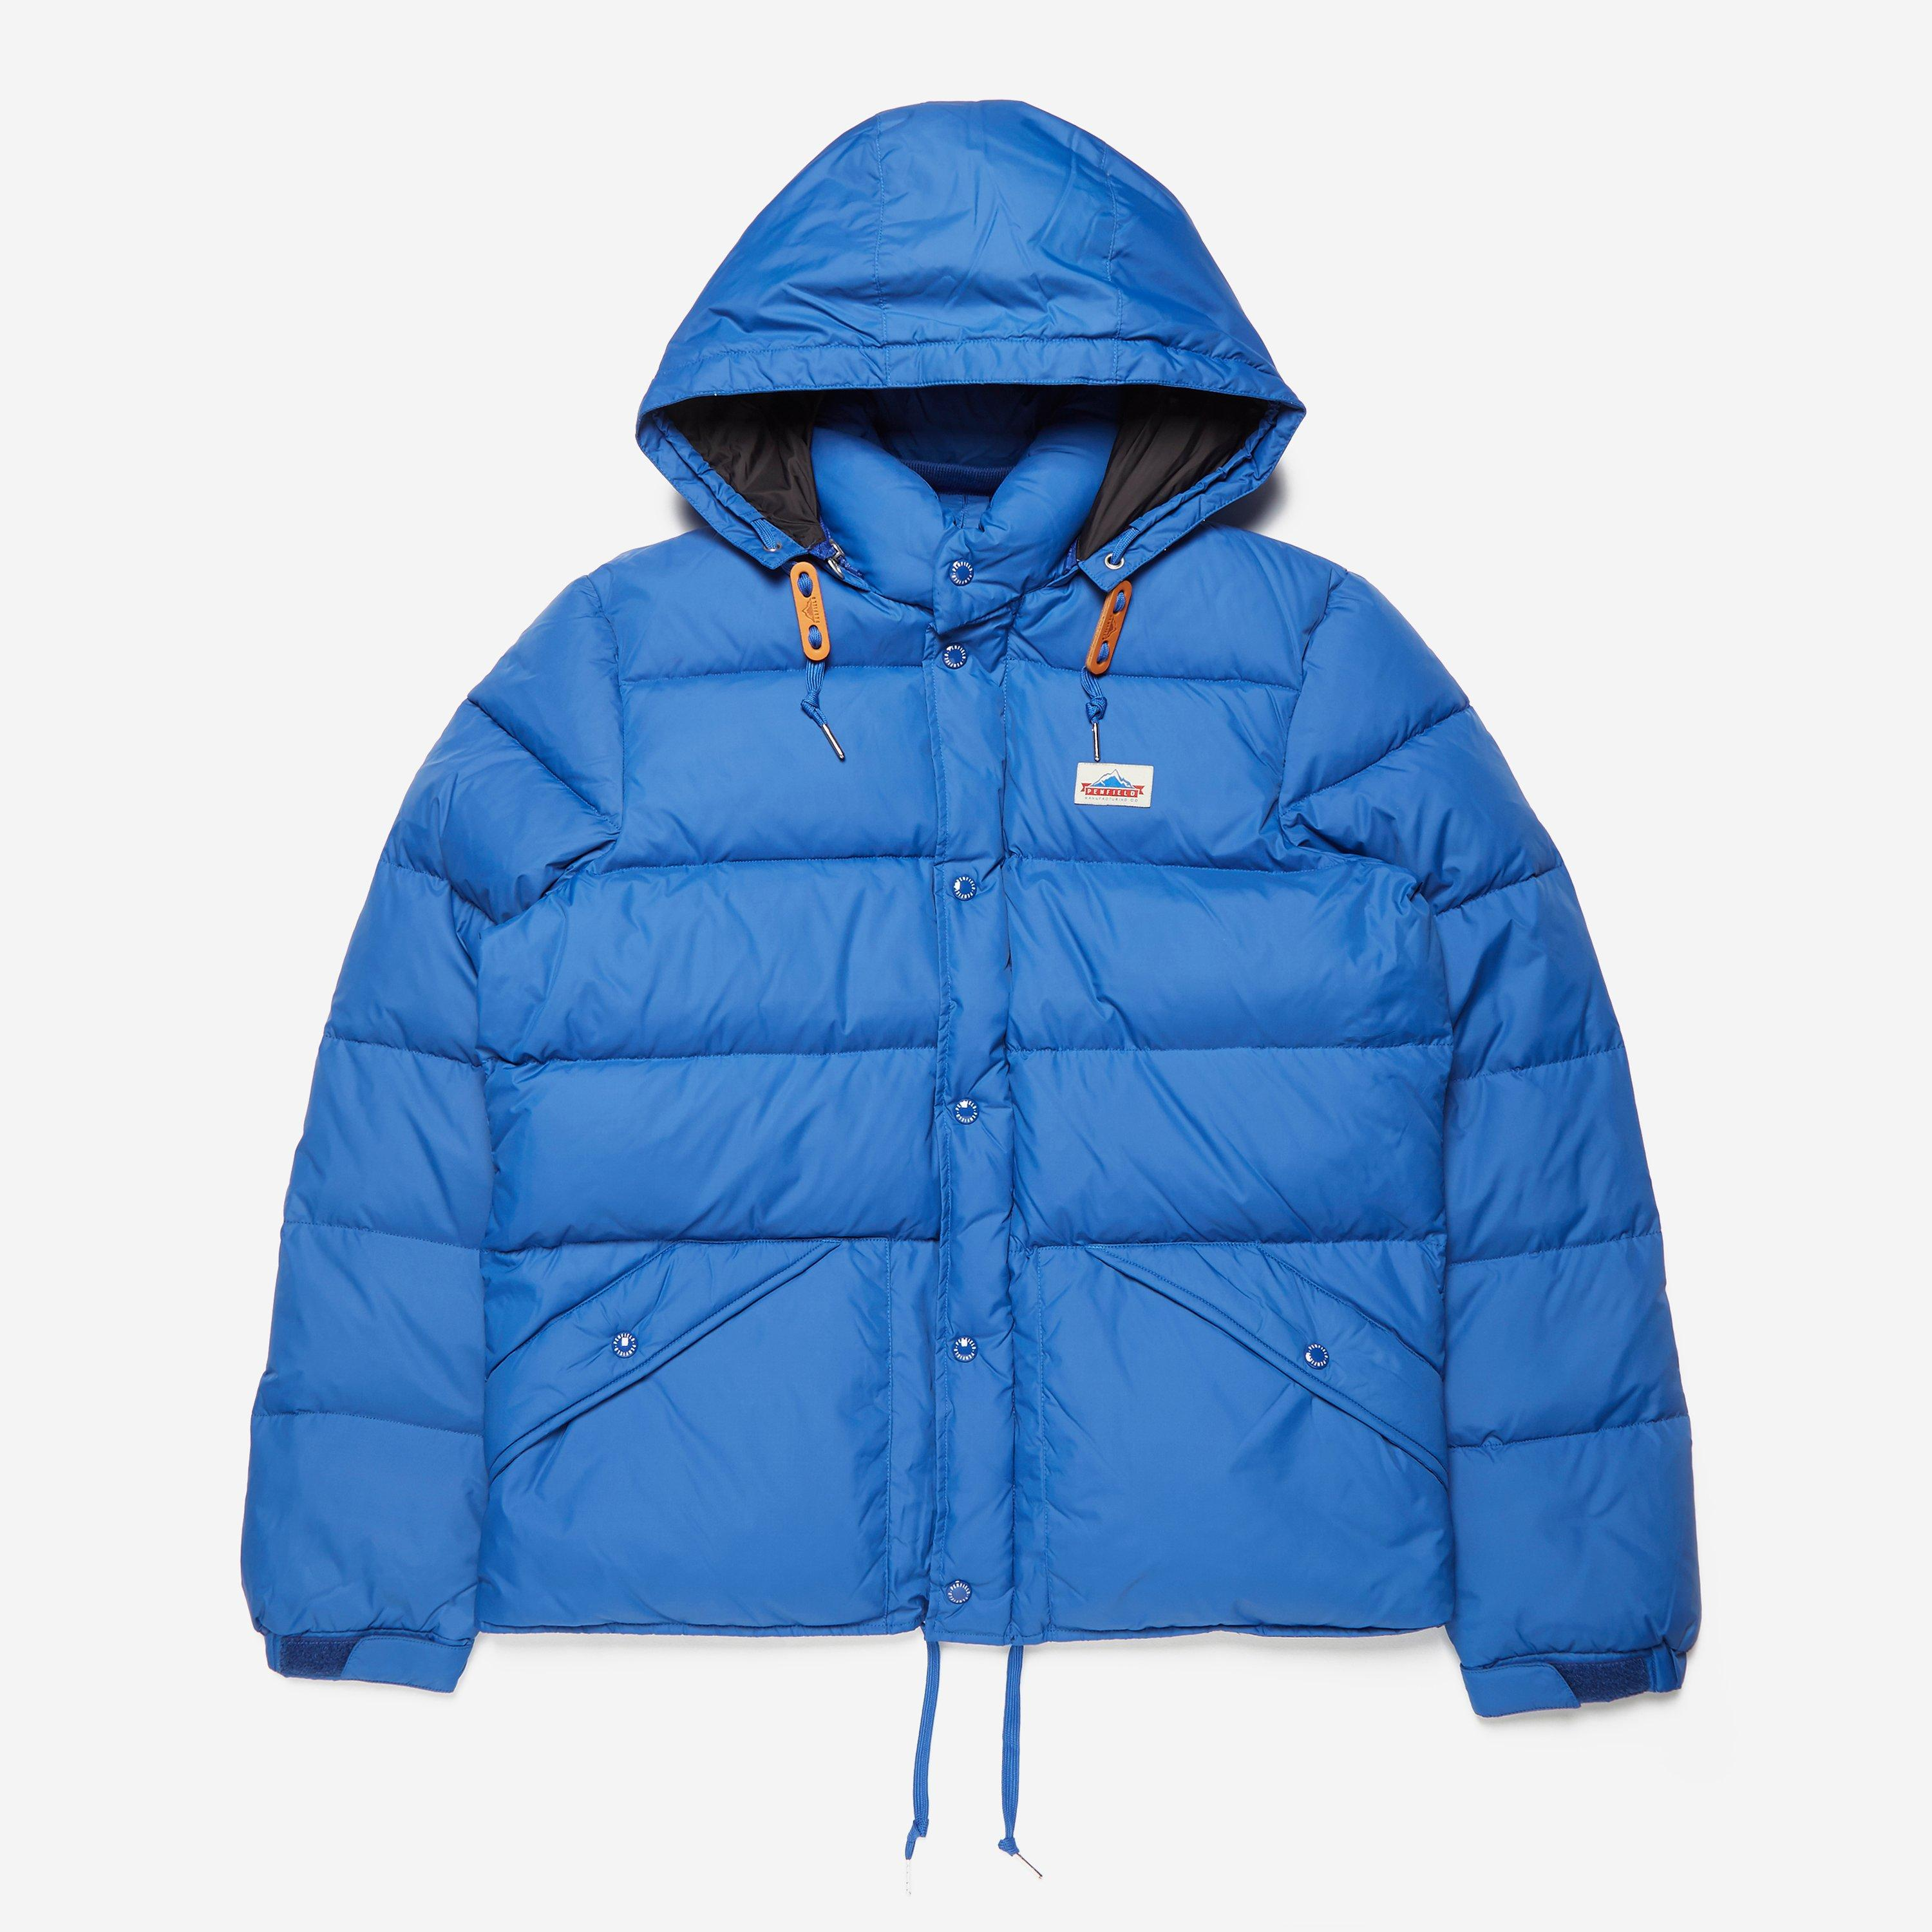 Penfield Bowerbridge Down Jacket